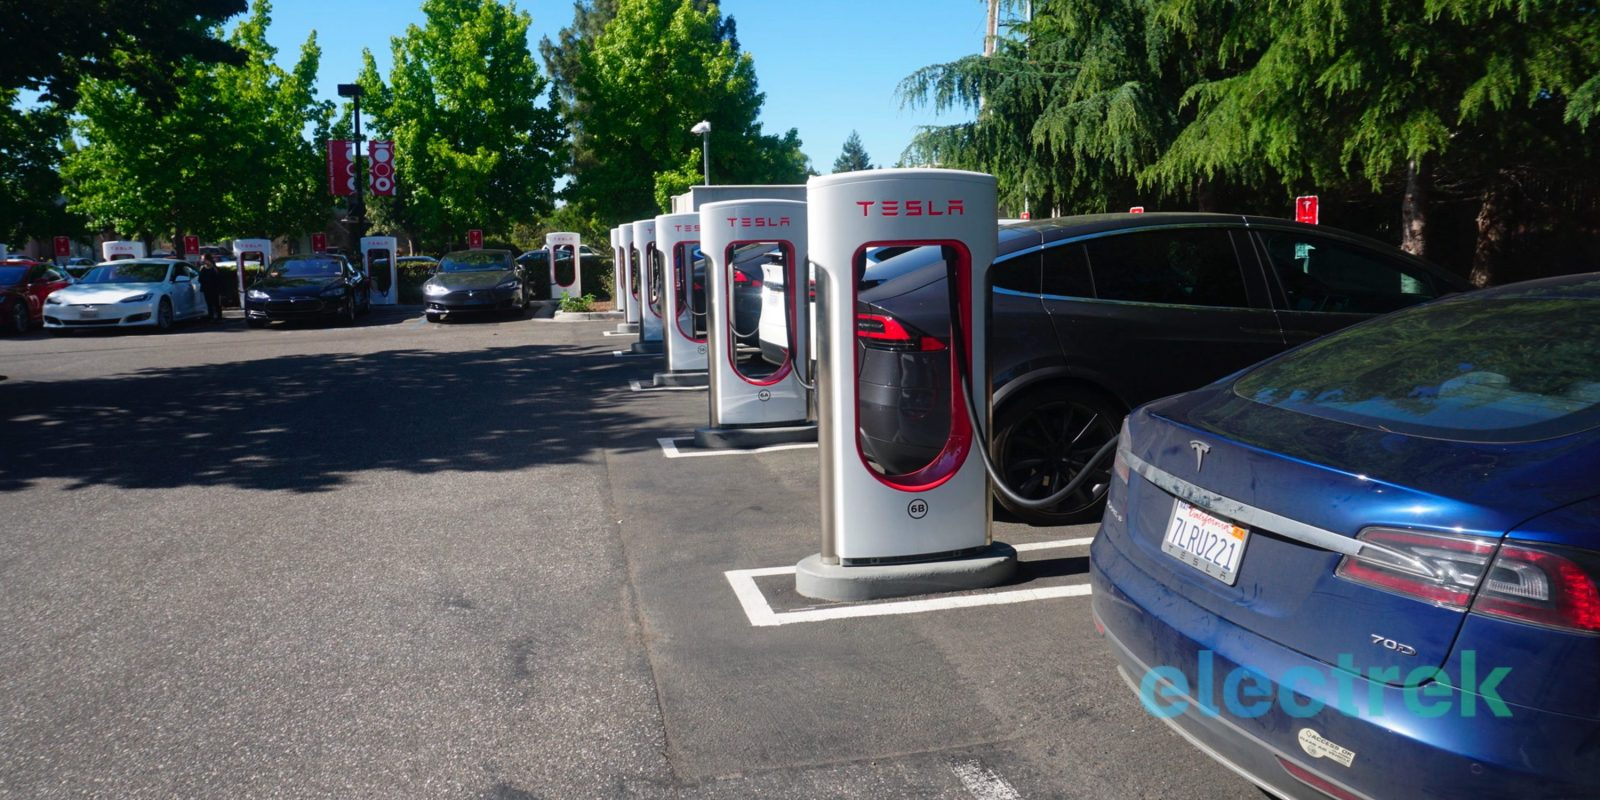 Porsche Says Tesla S Superchargers Are Not Sustainable They Will Charge More For Their Own Charging Network